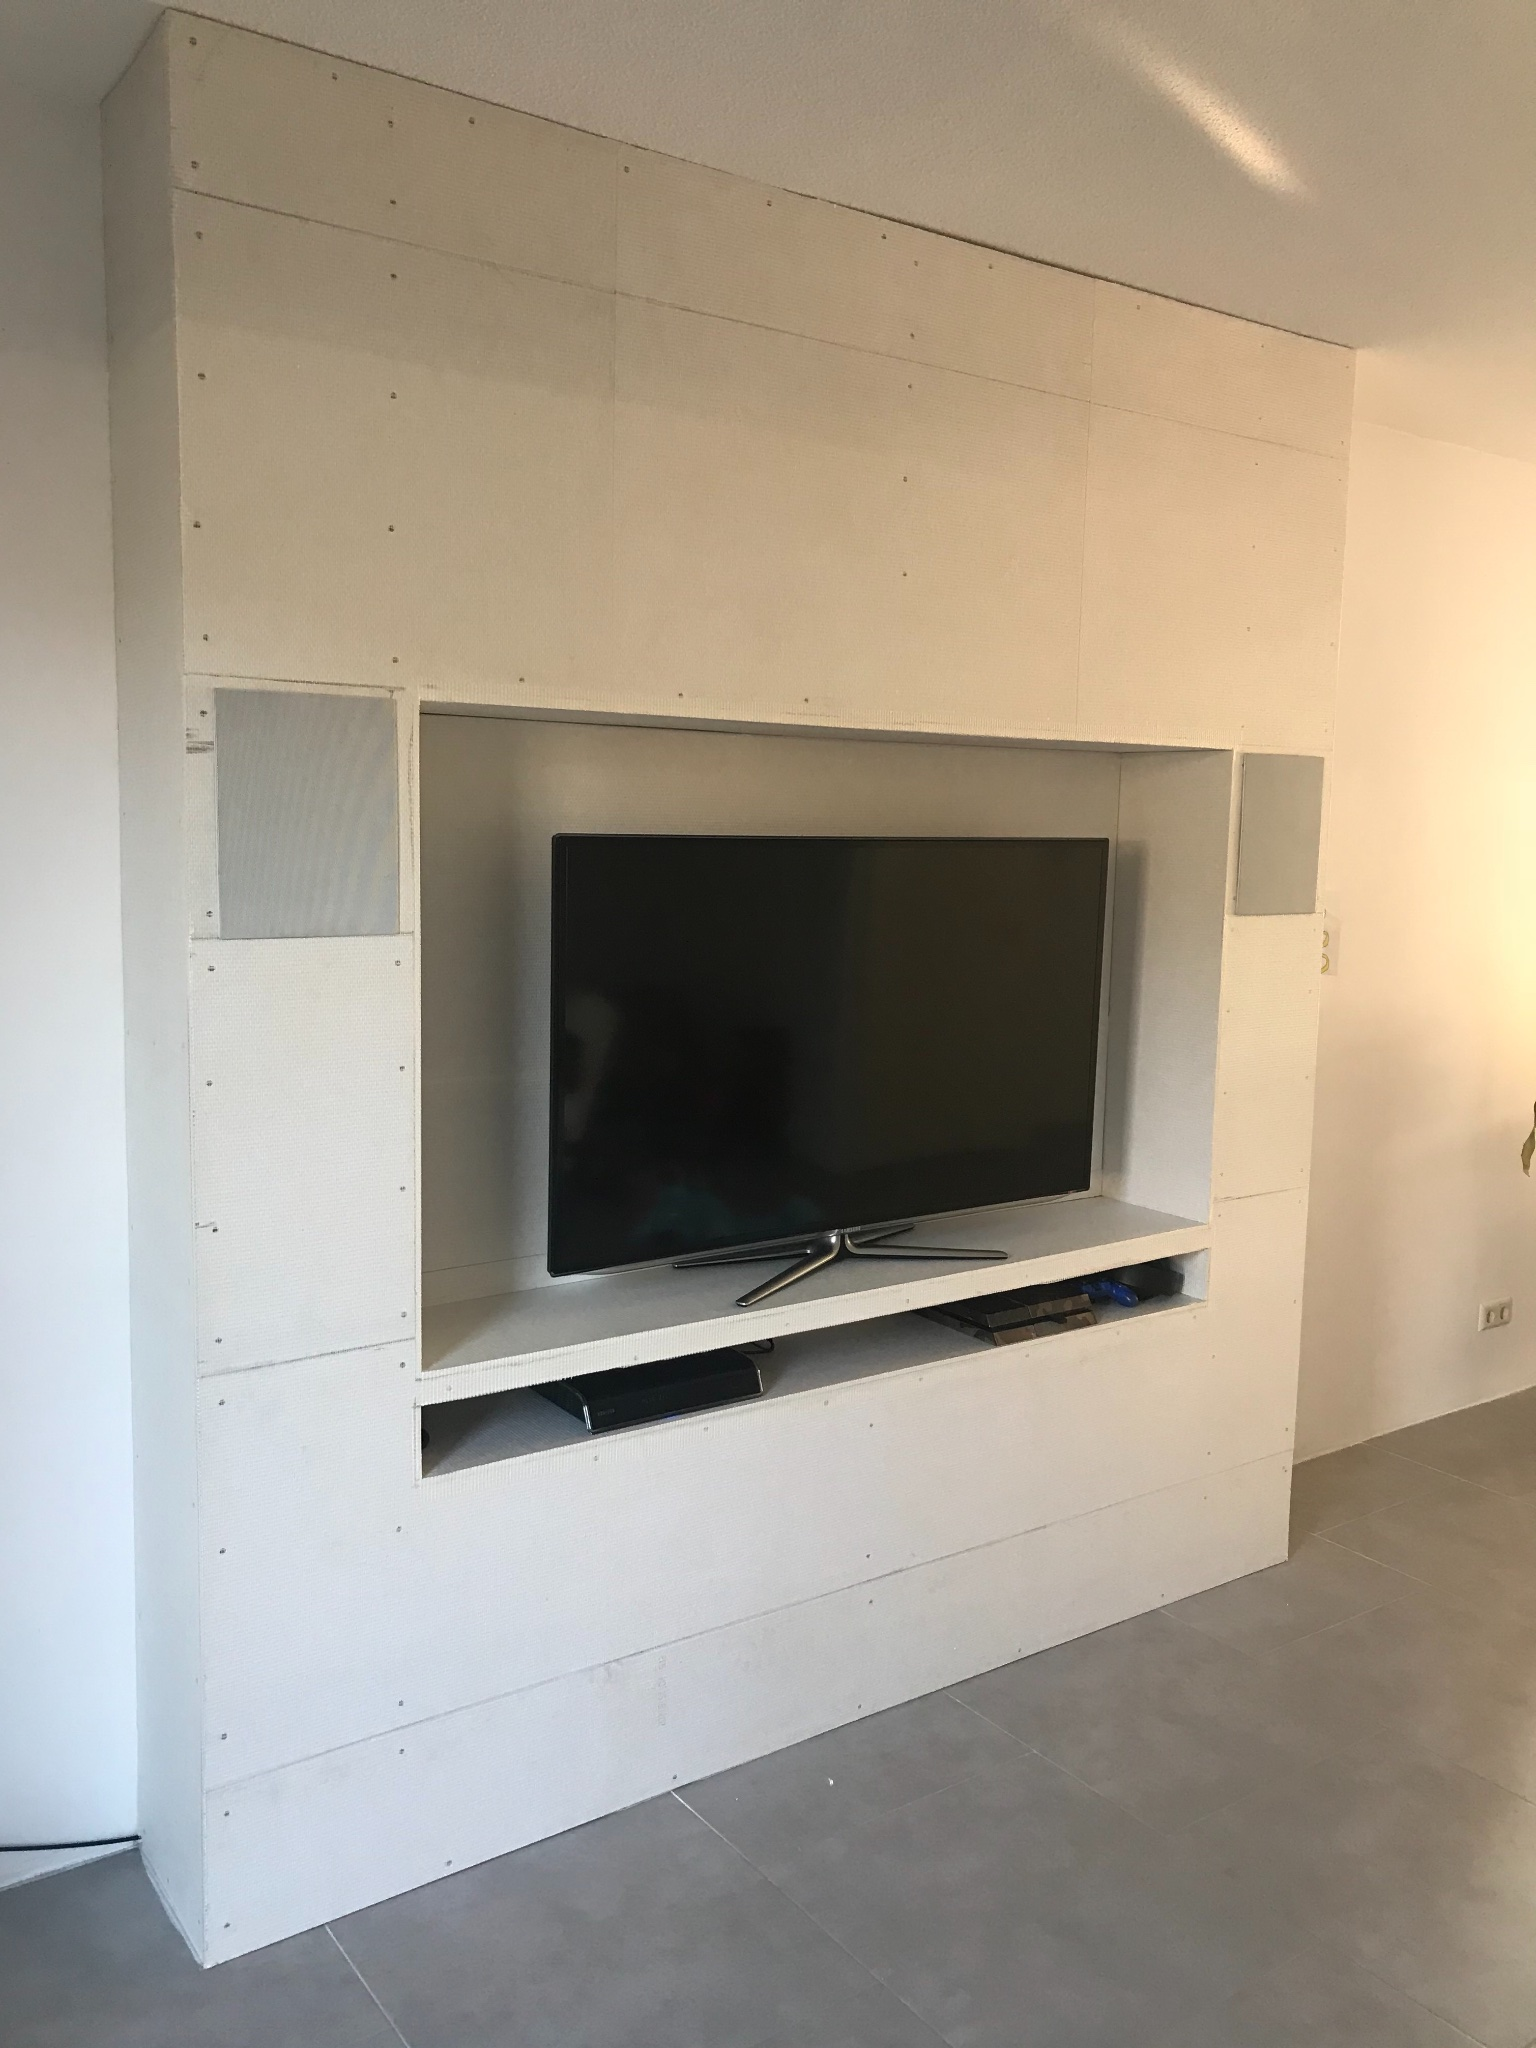 Cinewall Tv Wand Meubel Betegelen 6m2